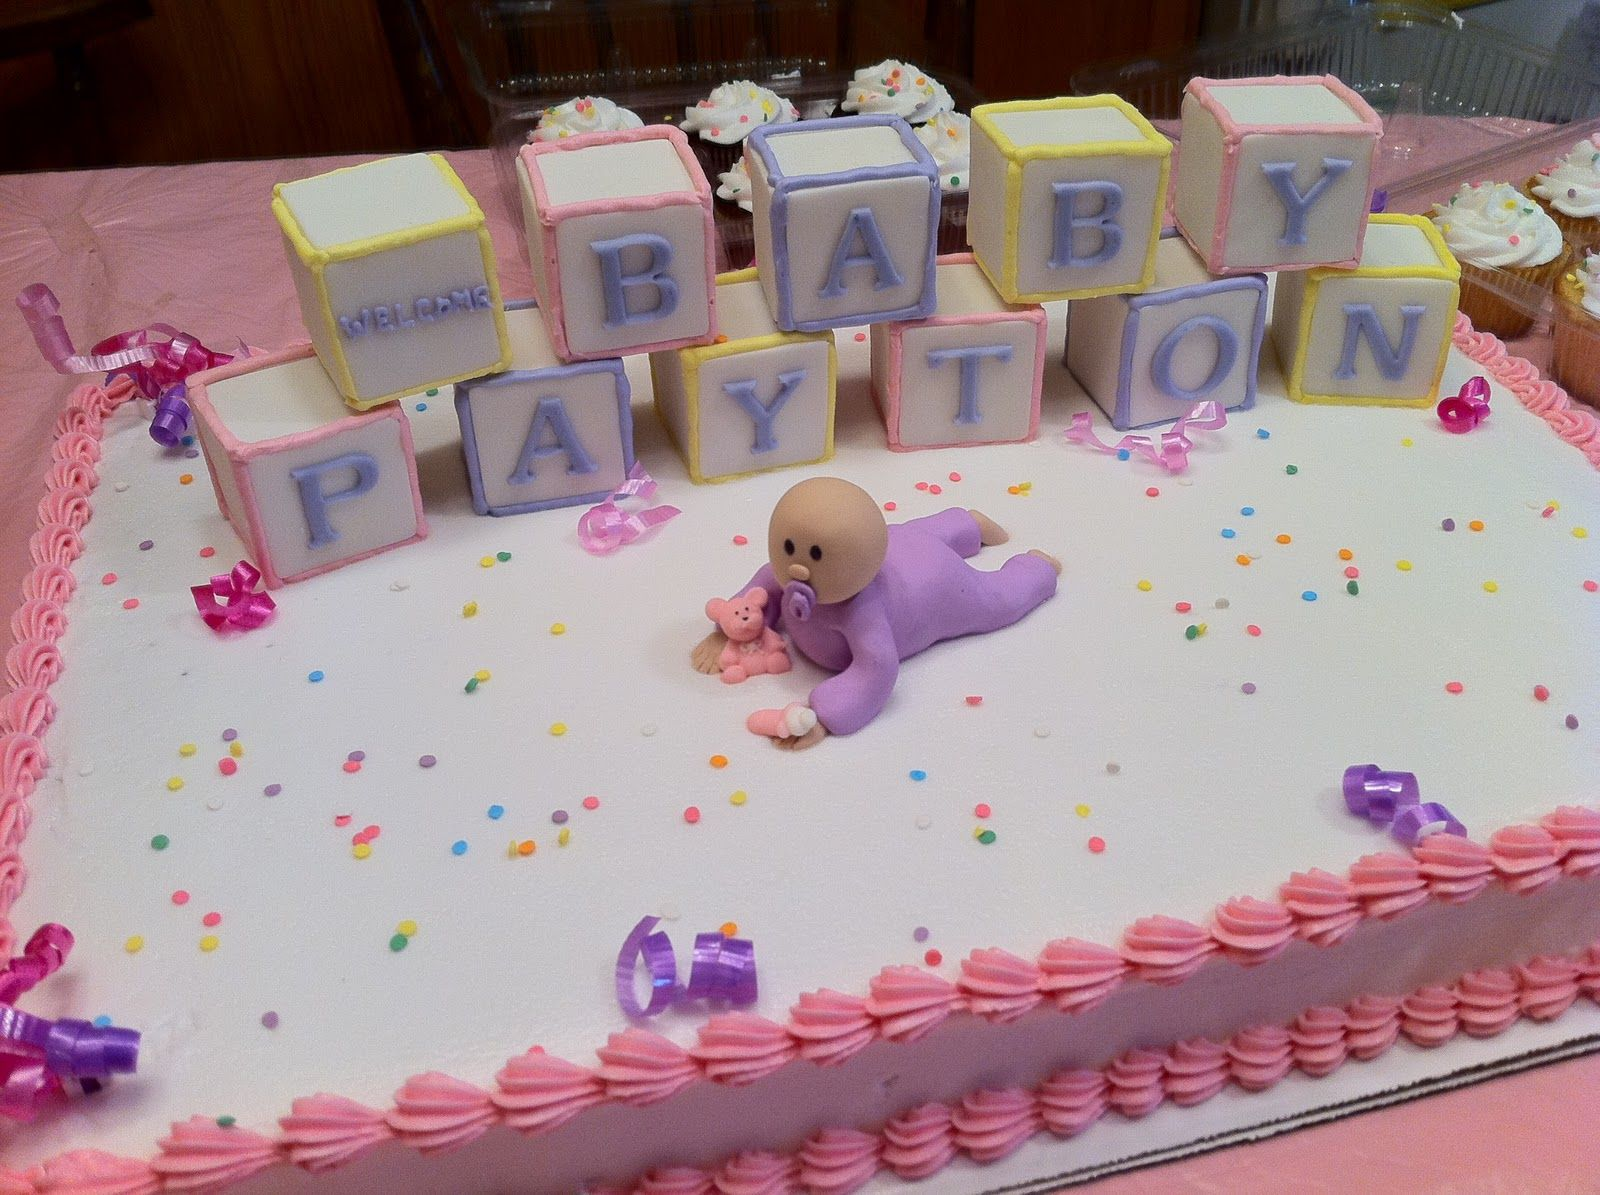 Simple Homemade Baby Shower Cakes For Girls Recipes This Cake Was For My Cousins Baby Shower